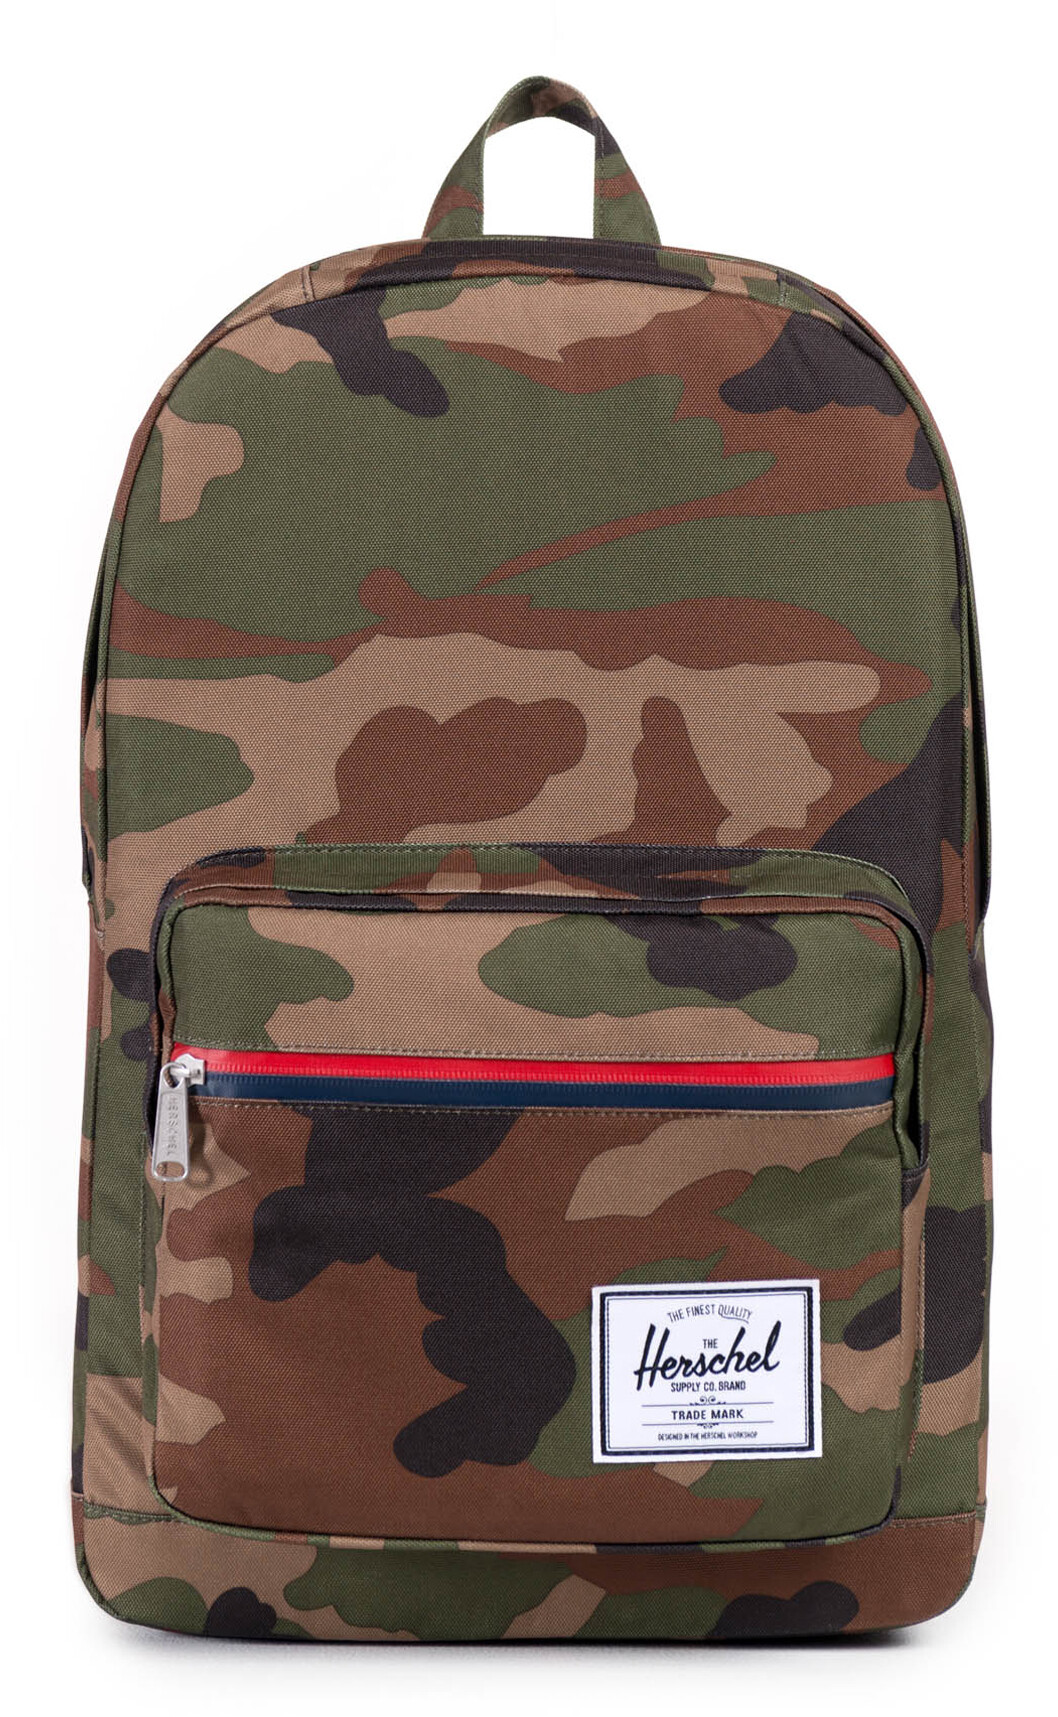 Herschel Pop Quiz Rygsæk 22L, woodland camo/multi zip (2019) | Travel bags